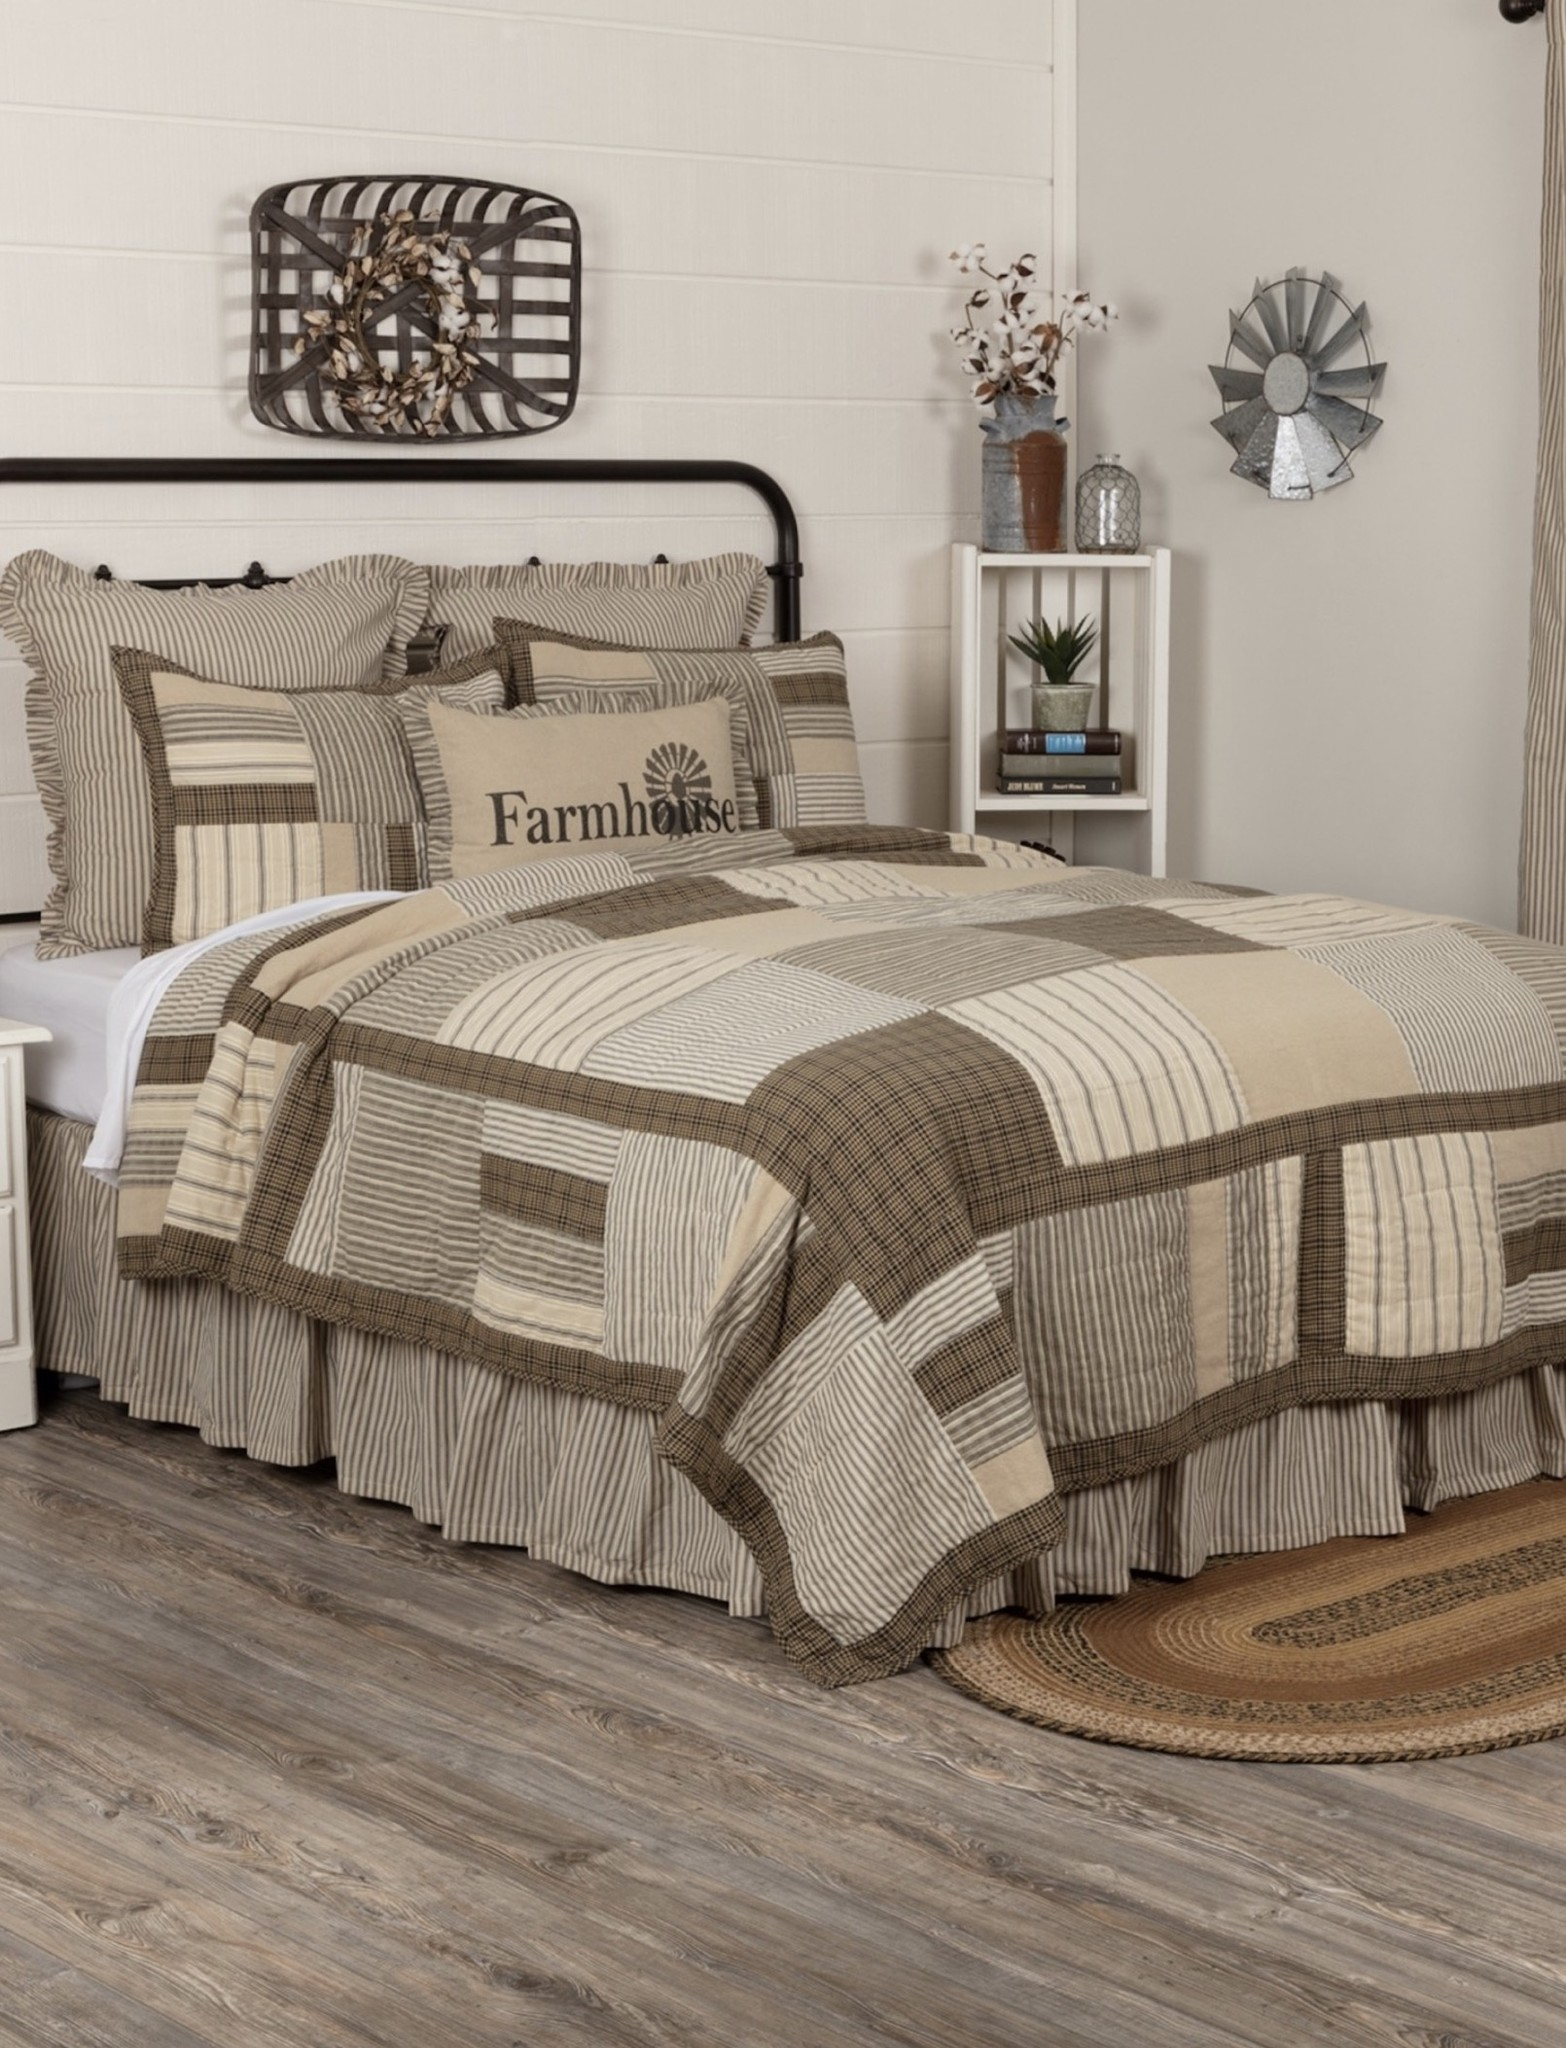 Nana's Farmhouse Sawyer Mill Home Queen Quilt Set